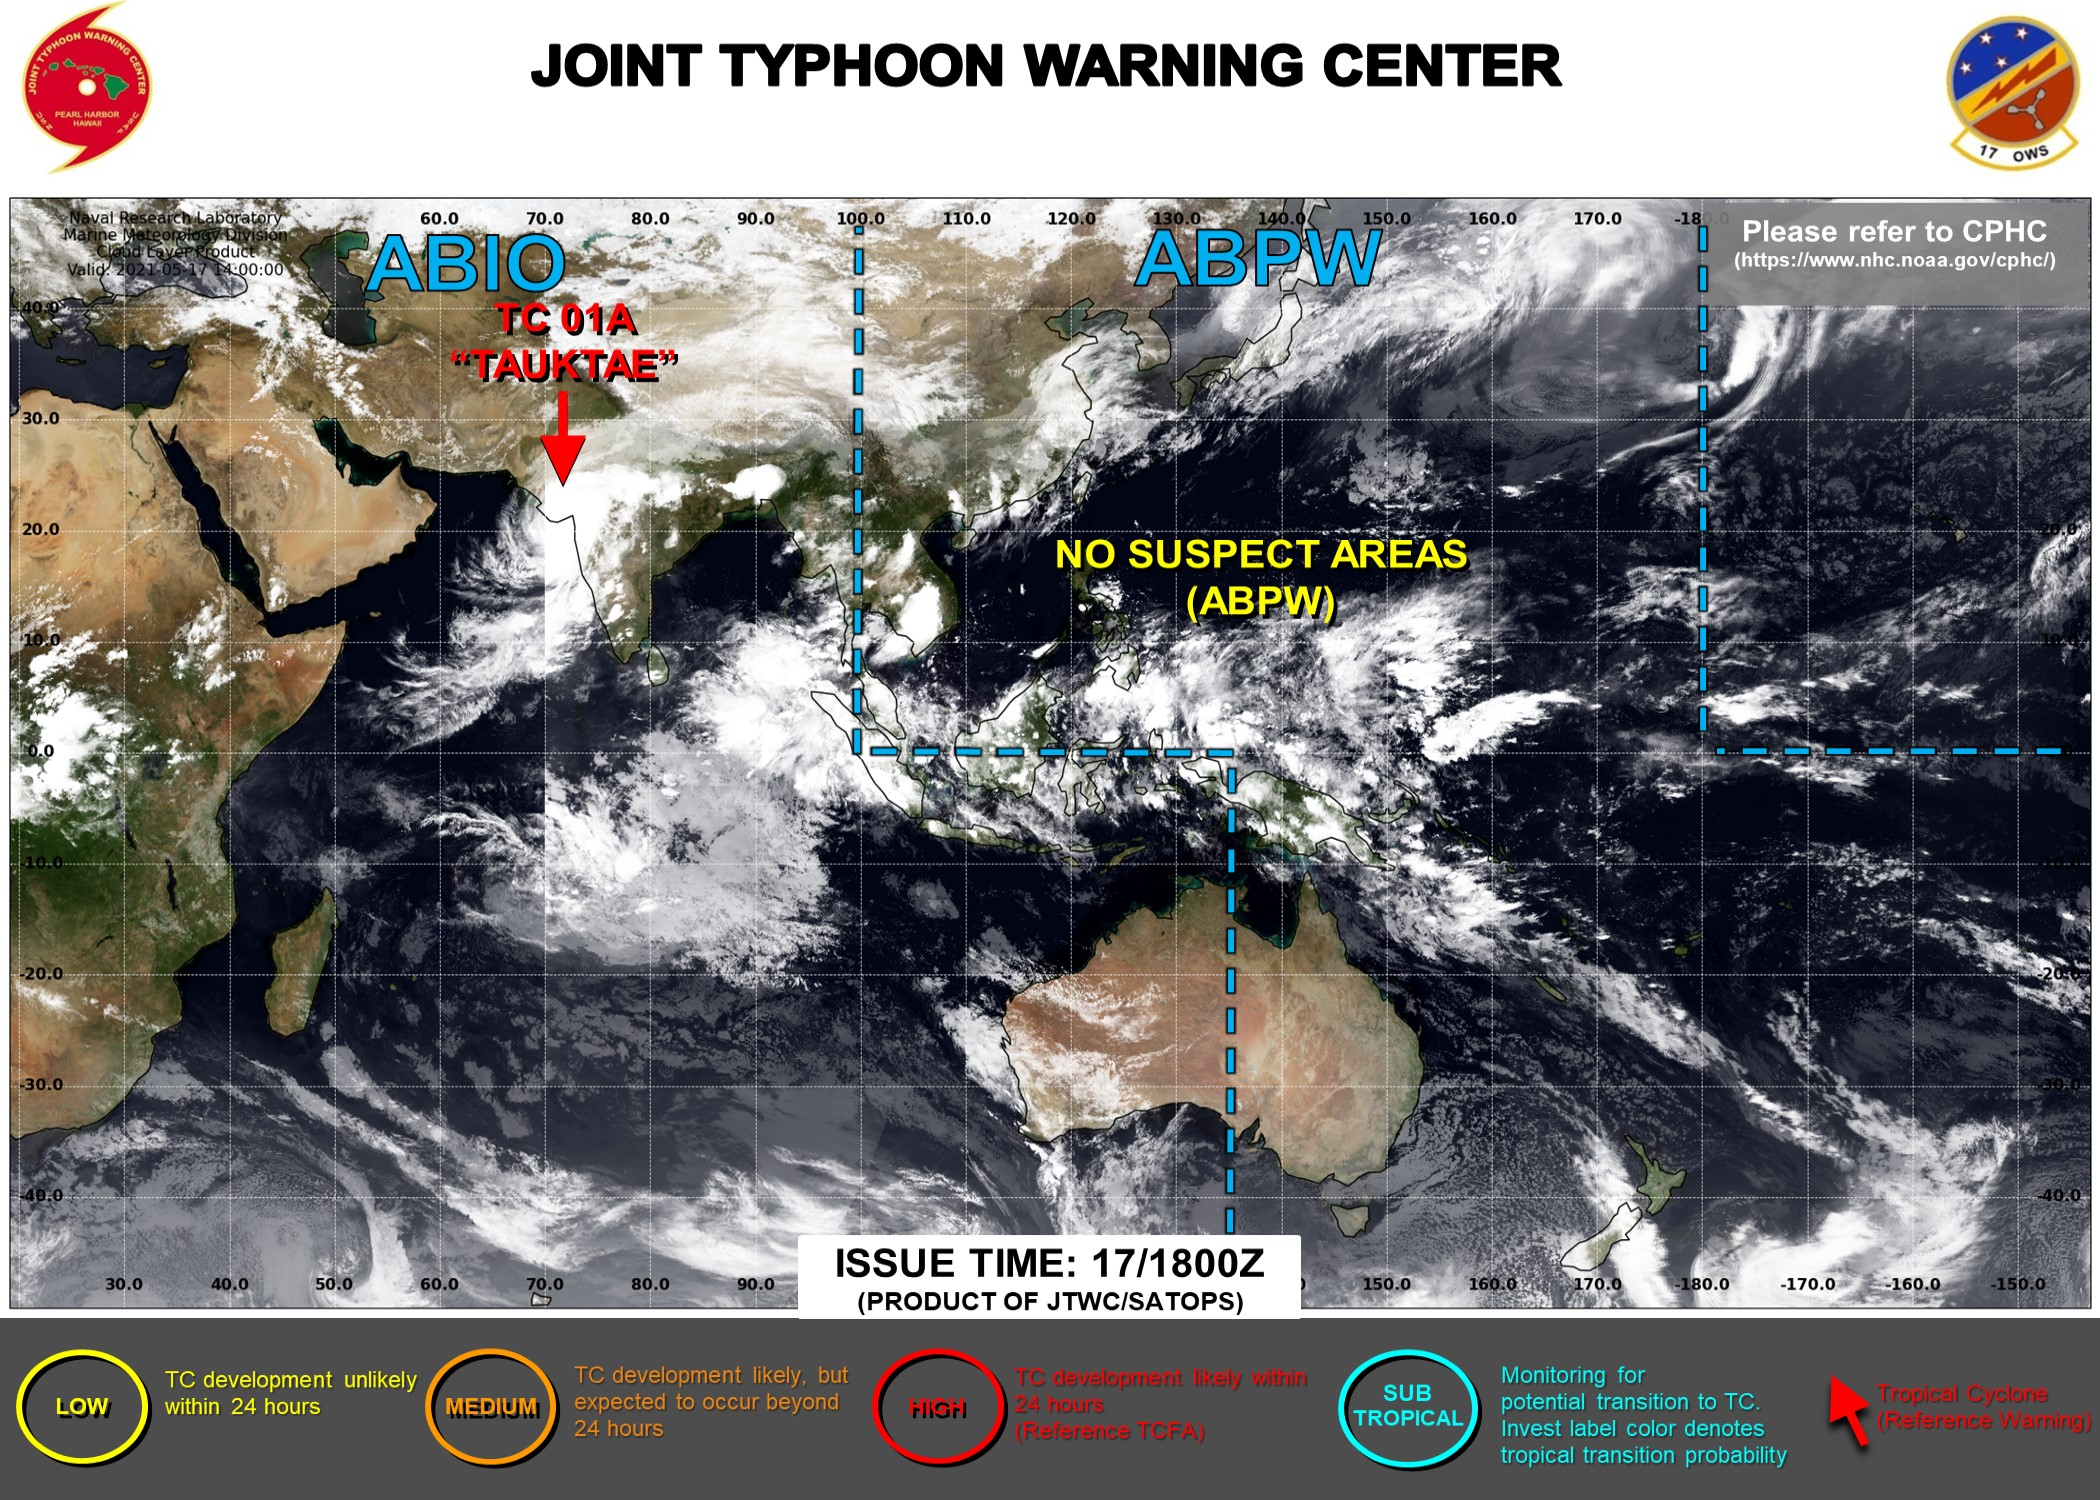 17/21UTC. FINAL WARNING WAS ISSUED BY THE JTWC ON TC 01A(TAUKTAE). 3 HOURLY SATELLITE BULLETINS ARE STILL ISSUED.